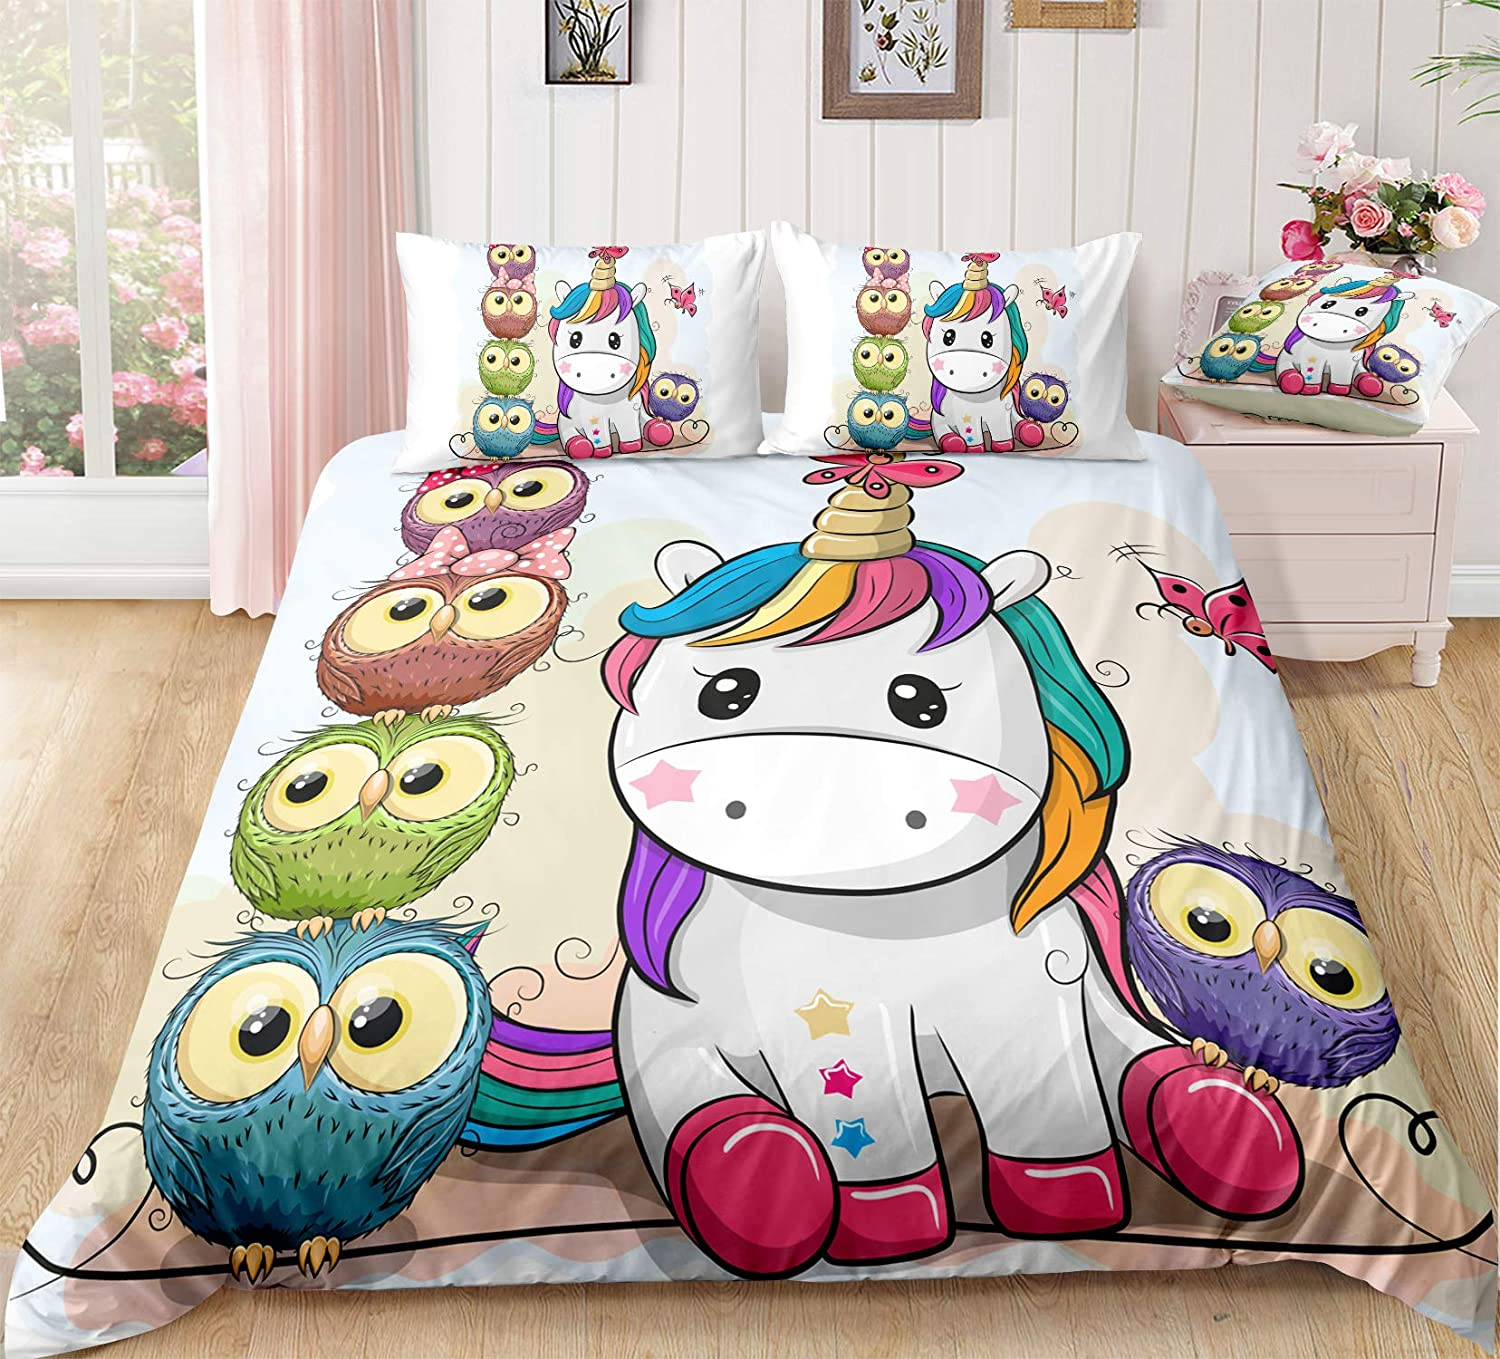 Flamingo Owl, Twin Suncloris Cute Tropical Flamingo Owl Bedding Set 3D Flamingo Insect Owl Meadow Rainbow Quilt Cover Zippered Duvet Cover with Pillow Shams for Kids and Adults